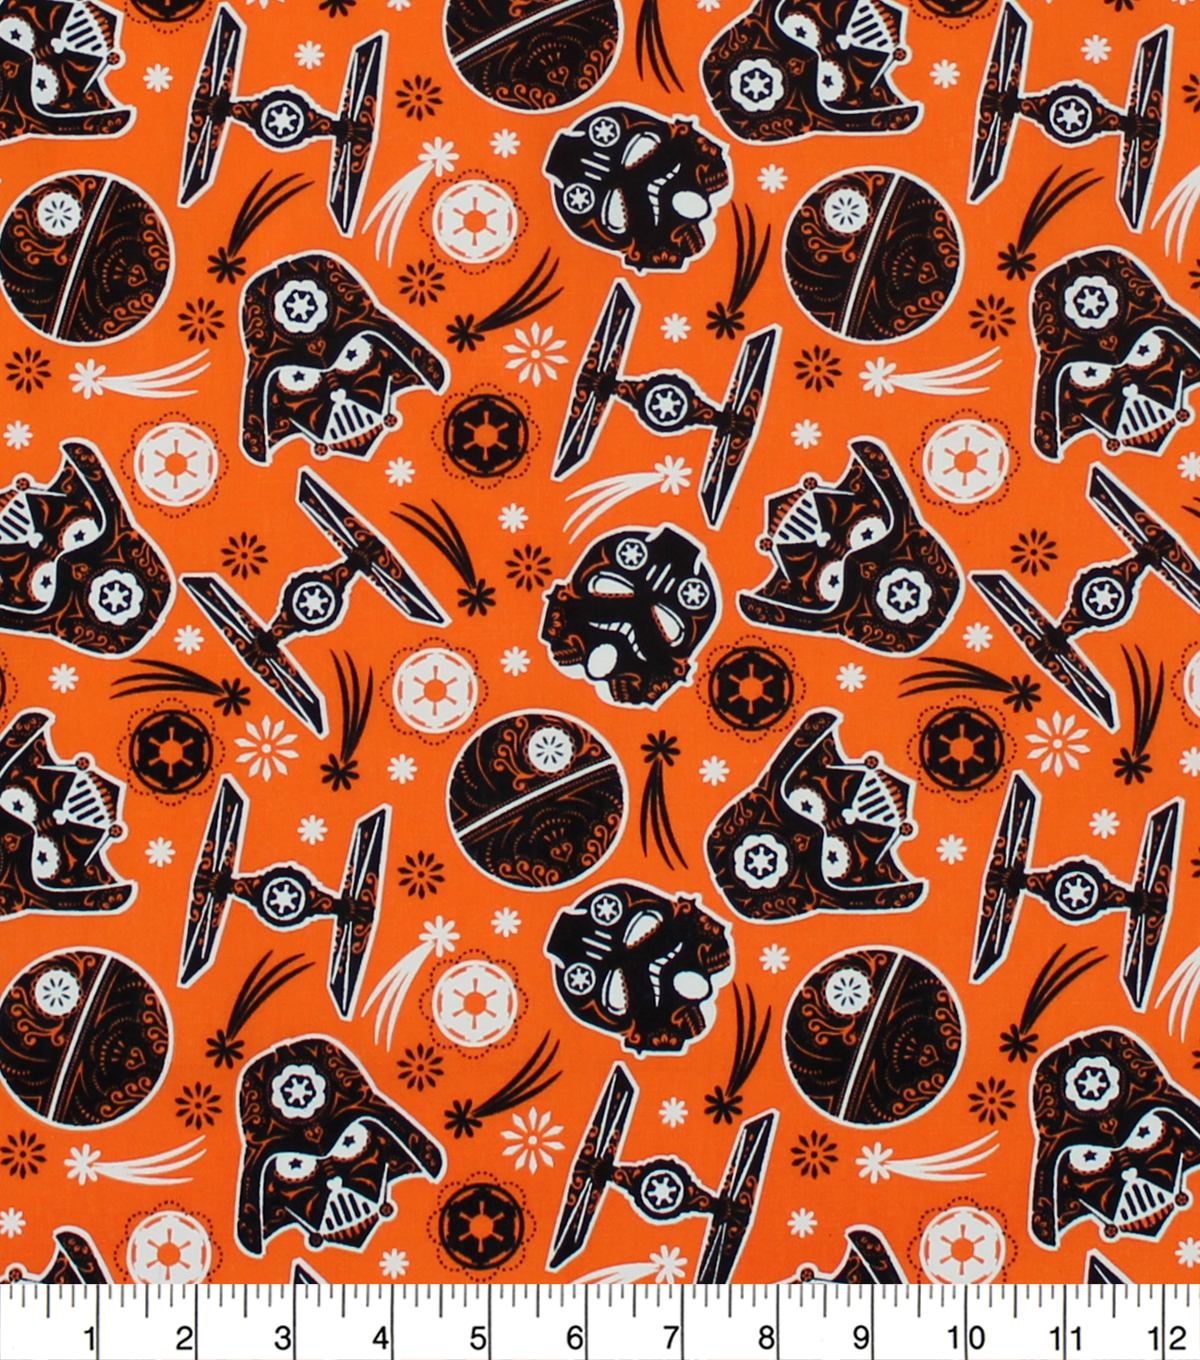 Halloween Star Wars Cotton Fabric -Dark Side Glow